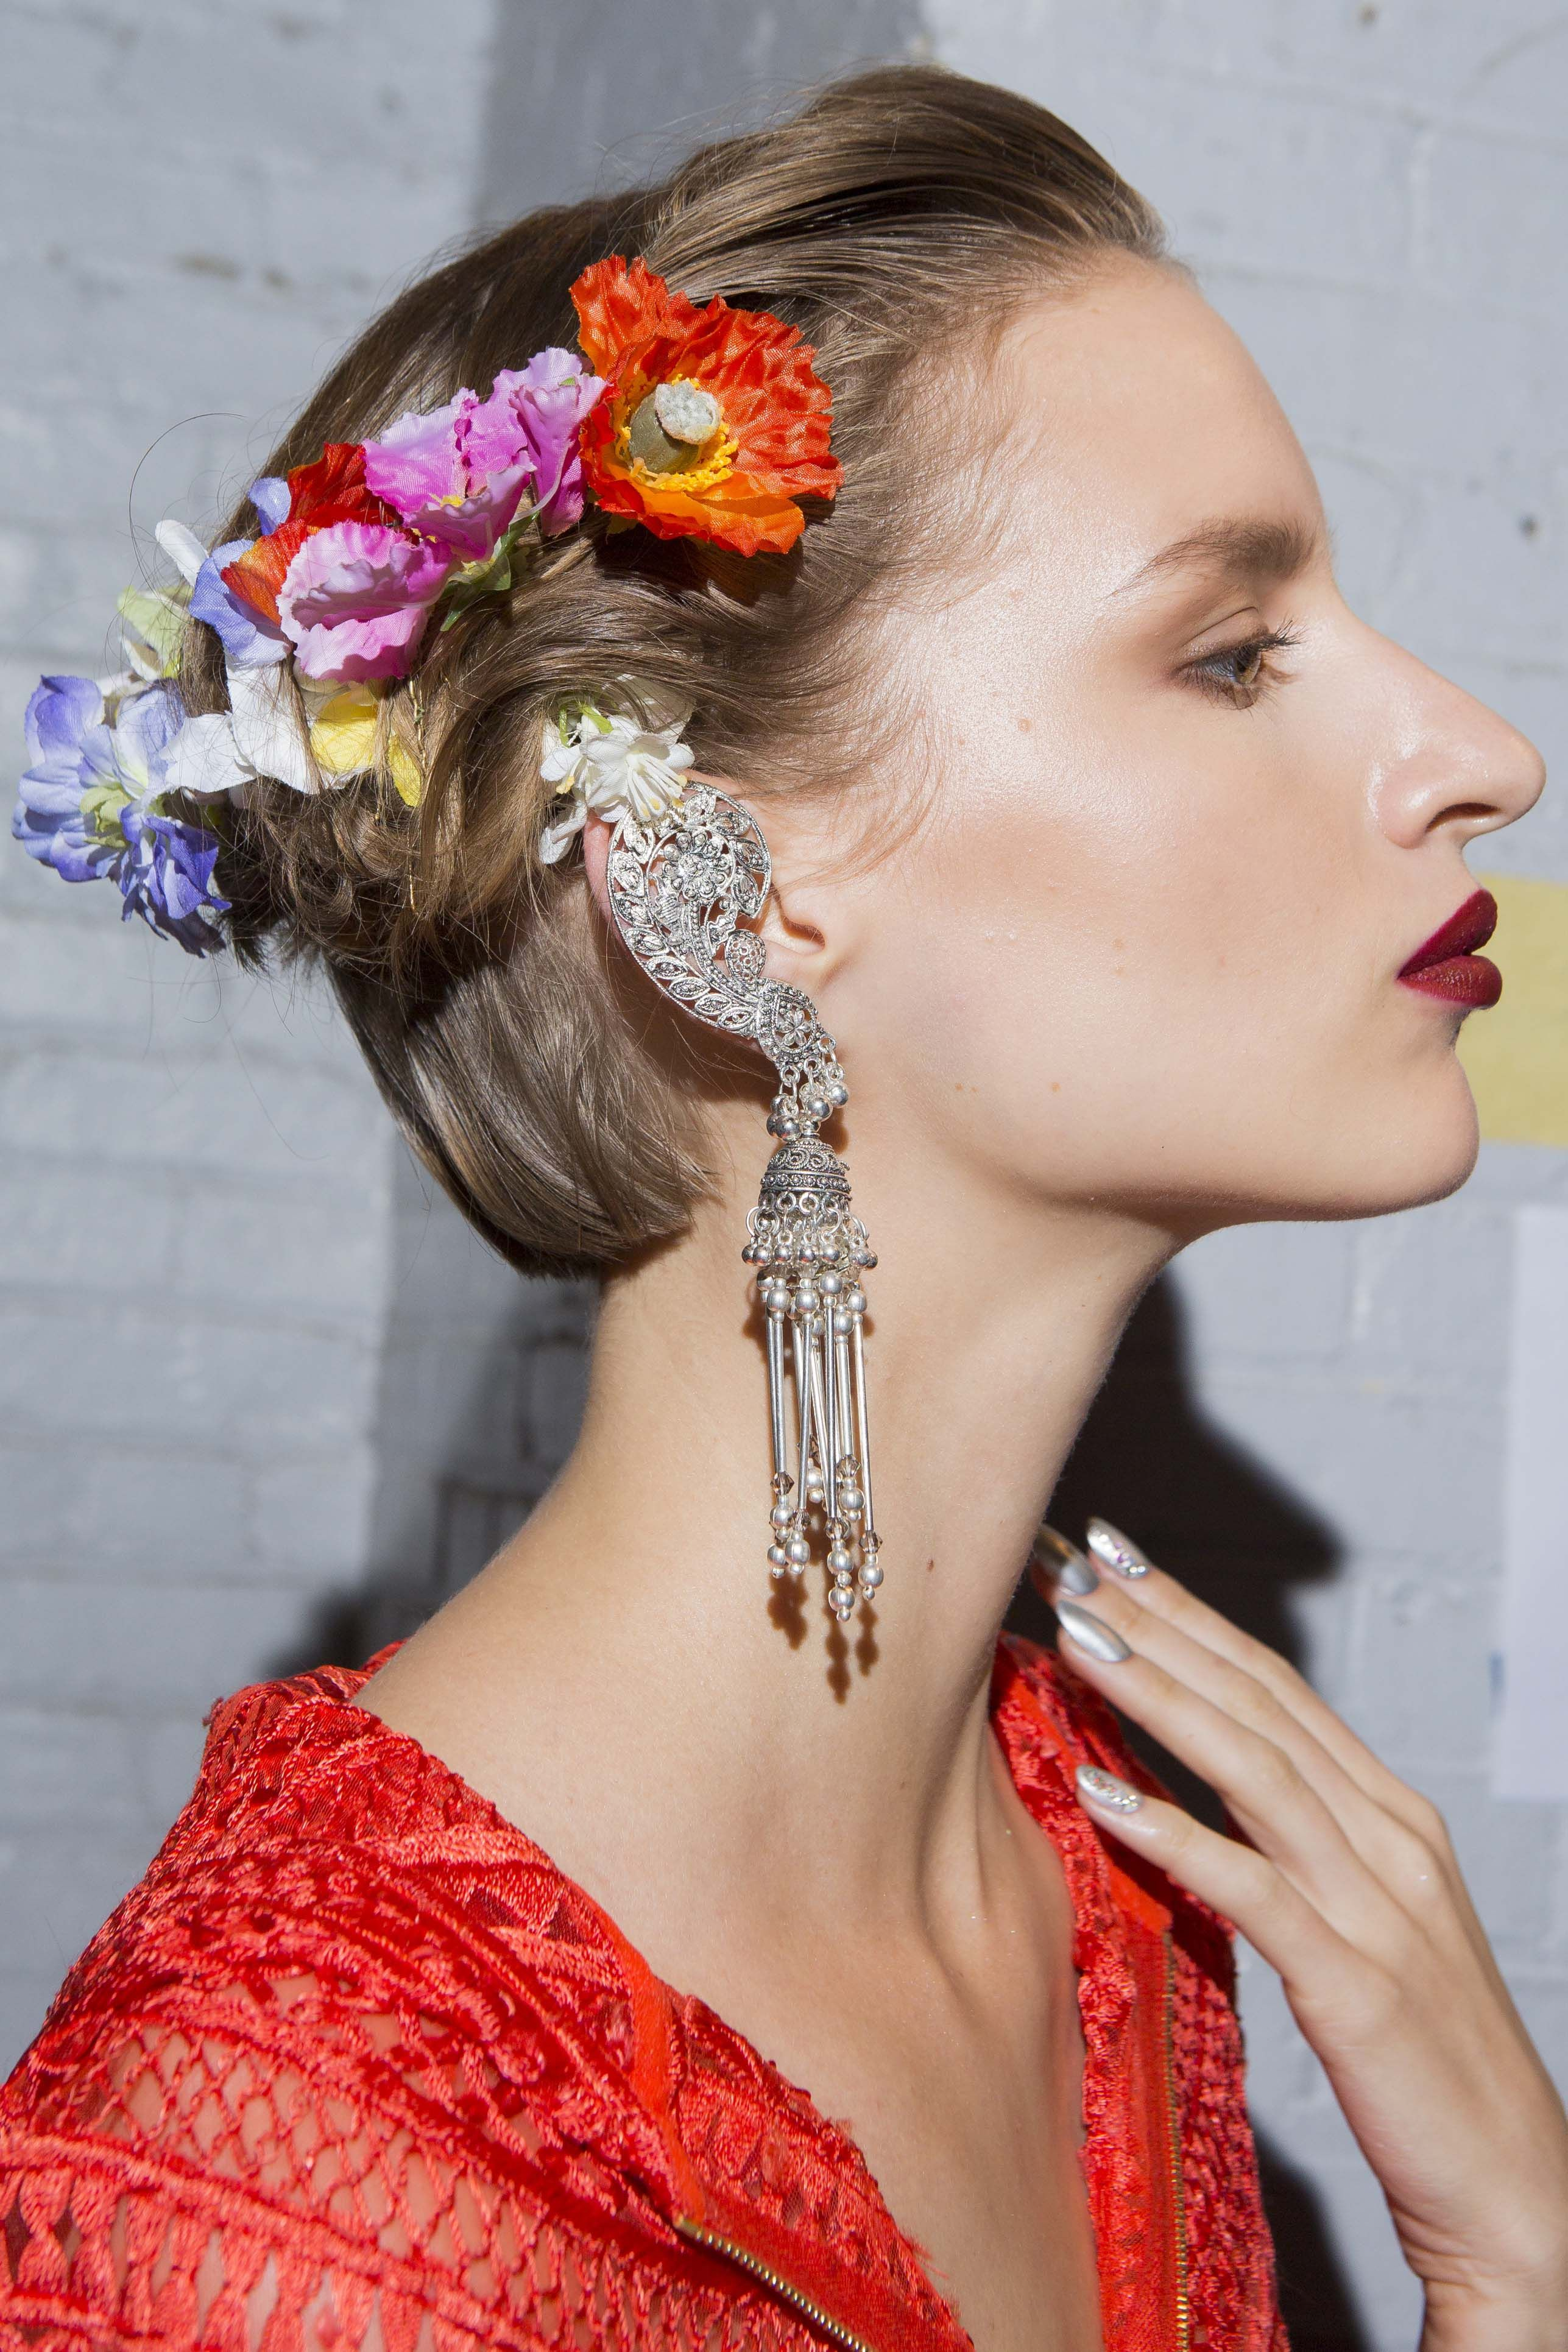 Spring Beauty Trends You Can Wear RightNow Spring Beauty Trends You Can Wear RightNow new pics